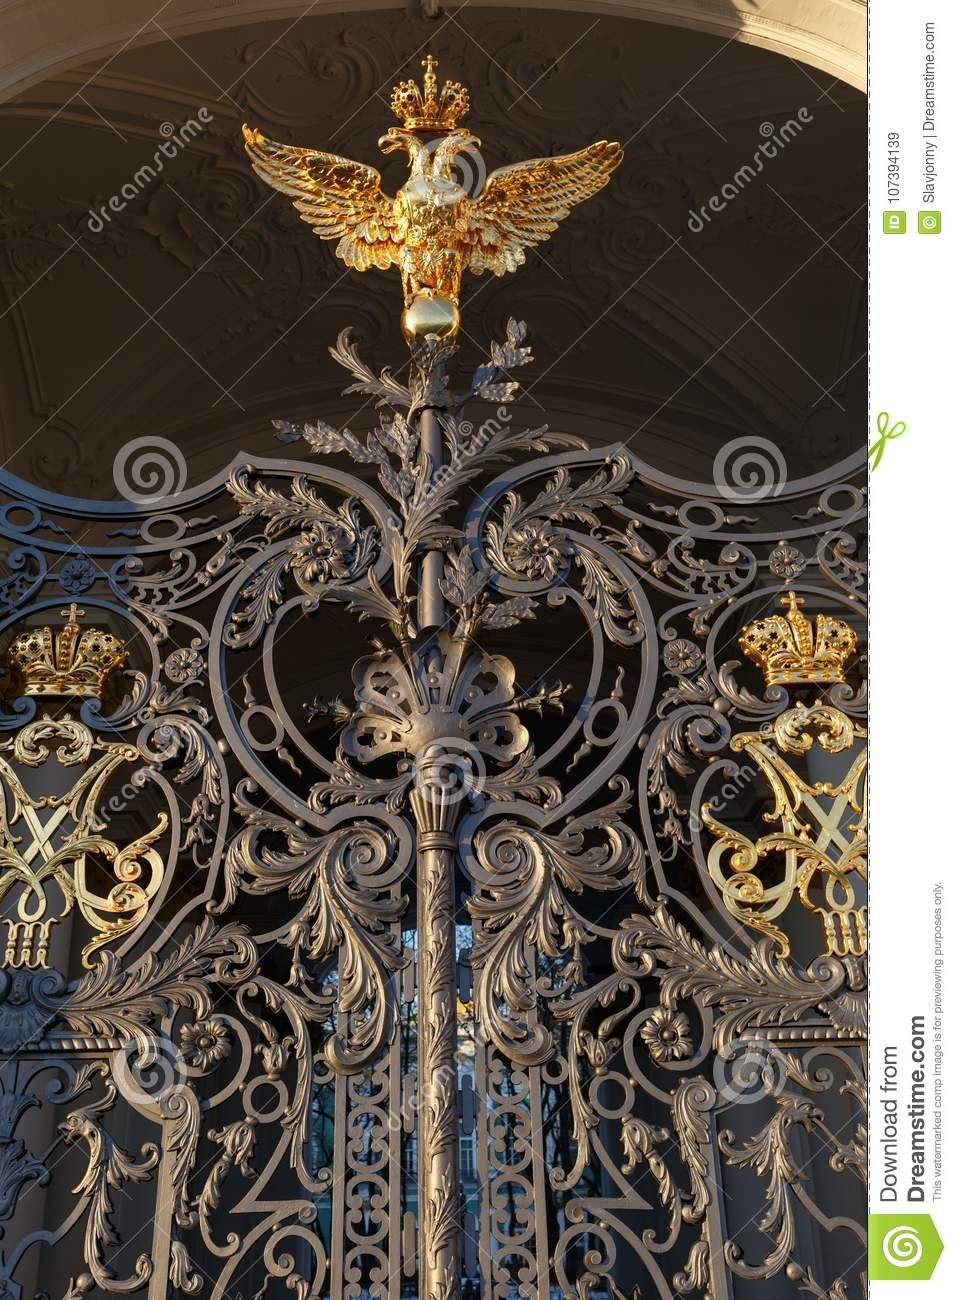 Palace square. Fragment of the gate of the Hermitage Museum in St. Petersburg.